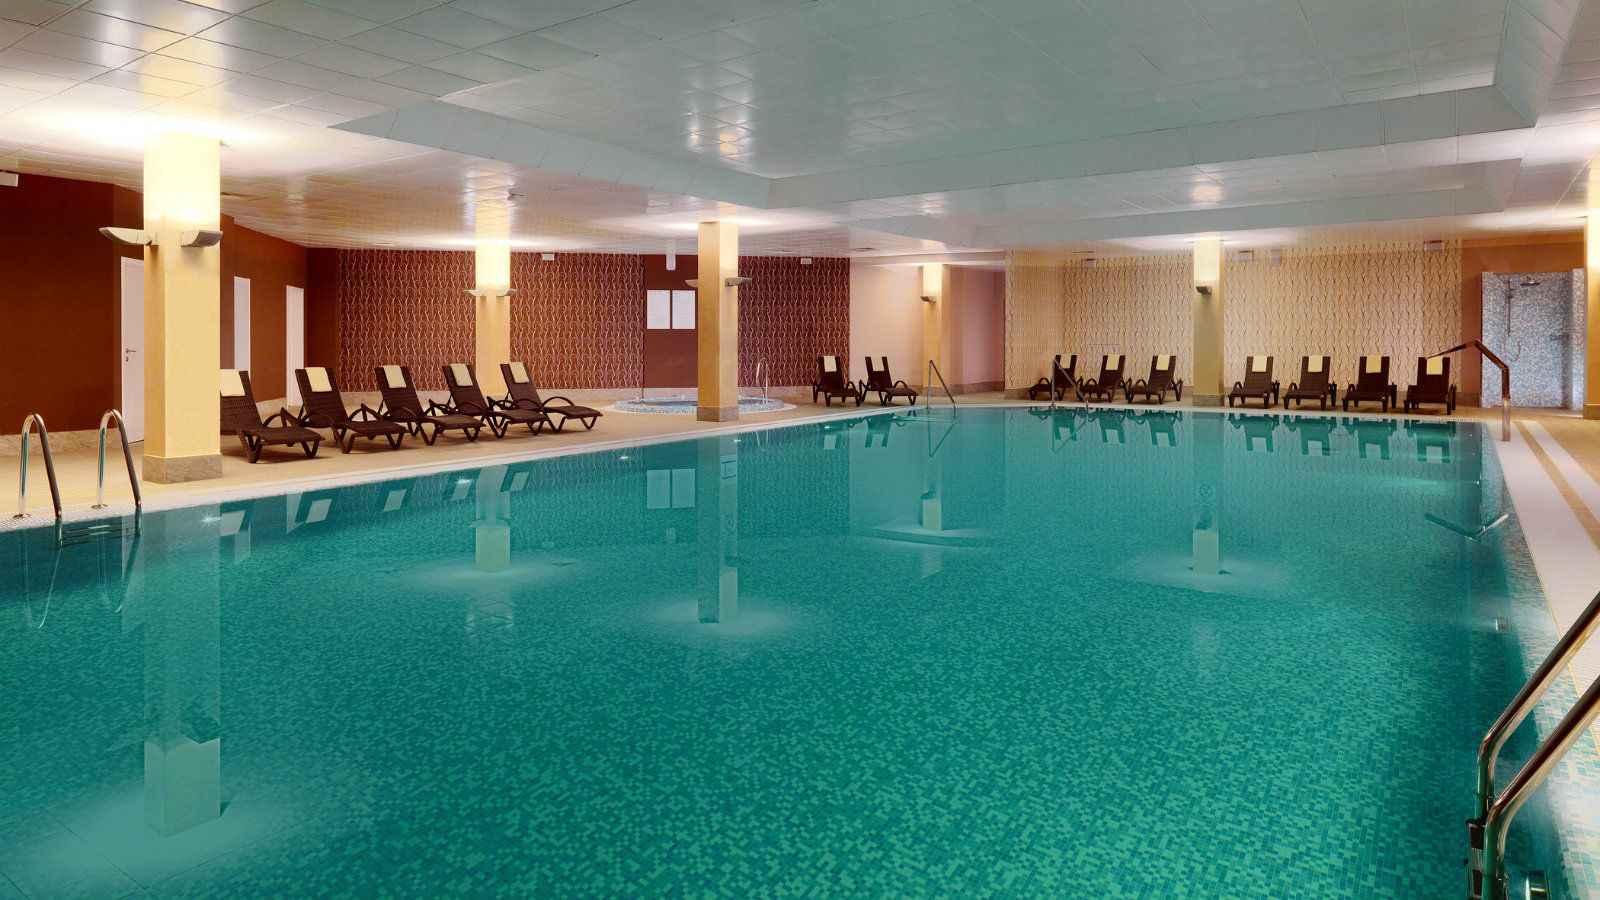 Spacious swimming pool with comfortable lounge chairs for relaxing at Sheraton Moscow Sheremetyevo